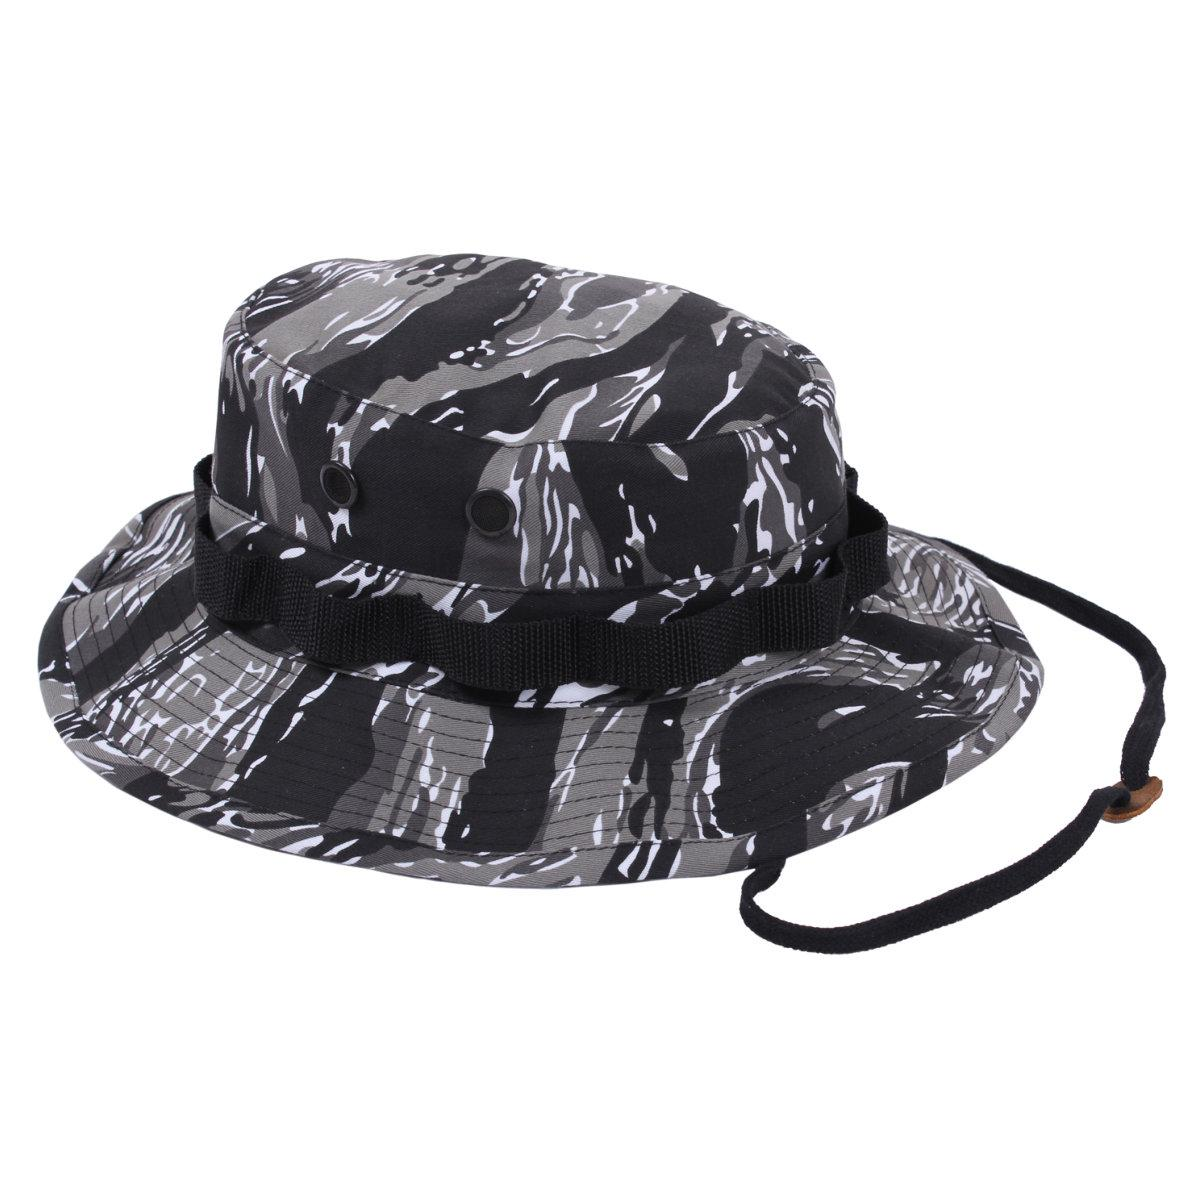 a119c9ba40a Details about Rothco Camouflage Military Style Boonie Hat